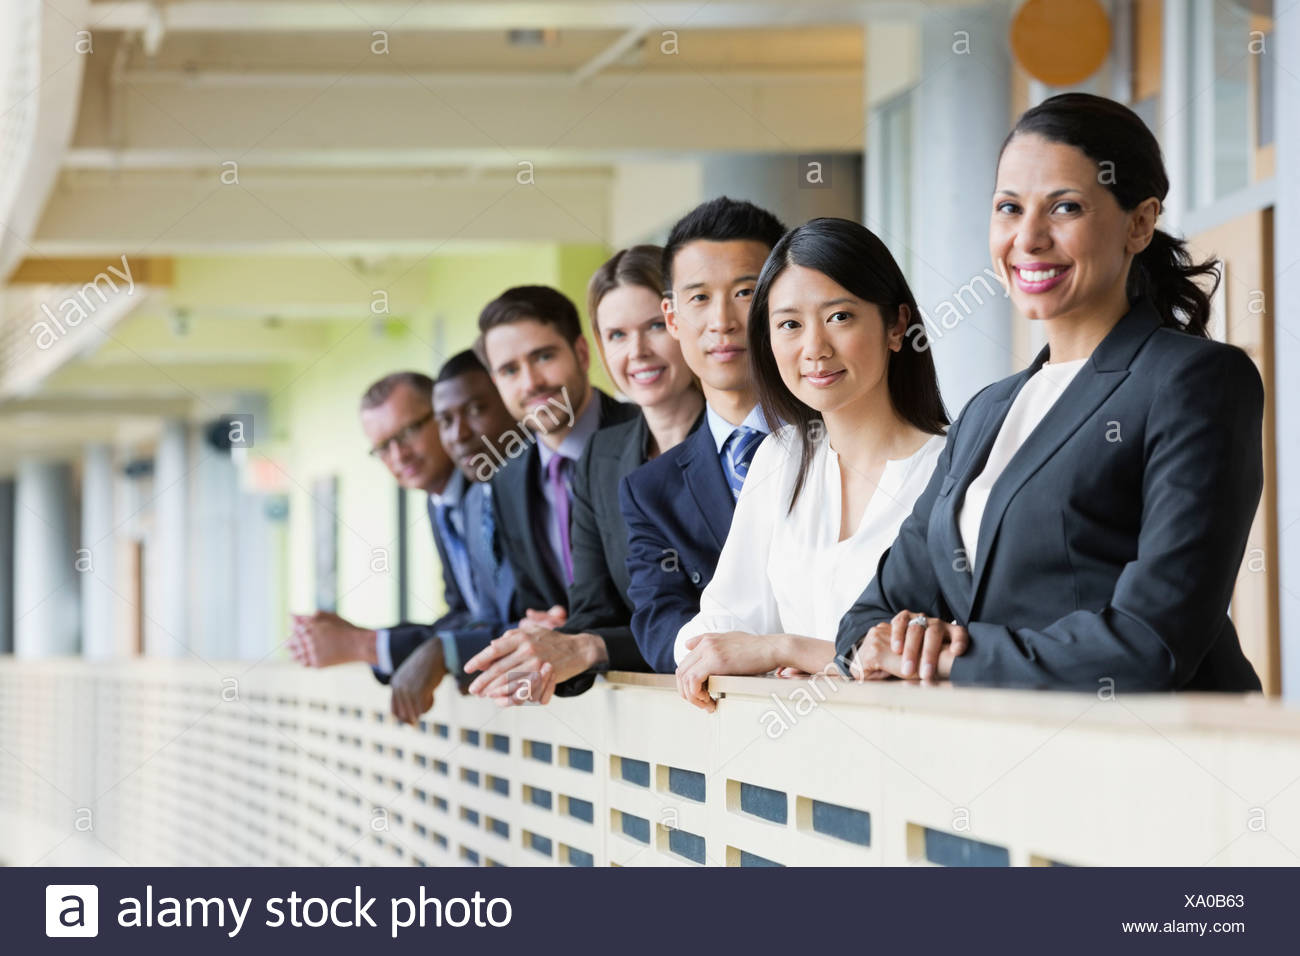 Smiling businesswoman standing in a row Photo Stock